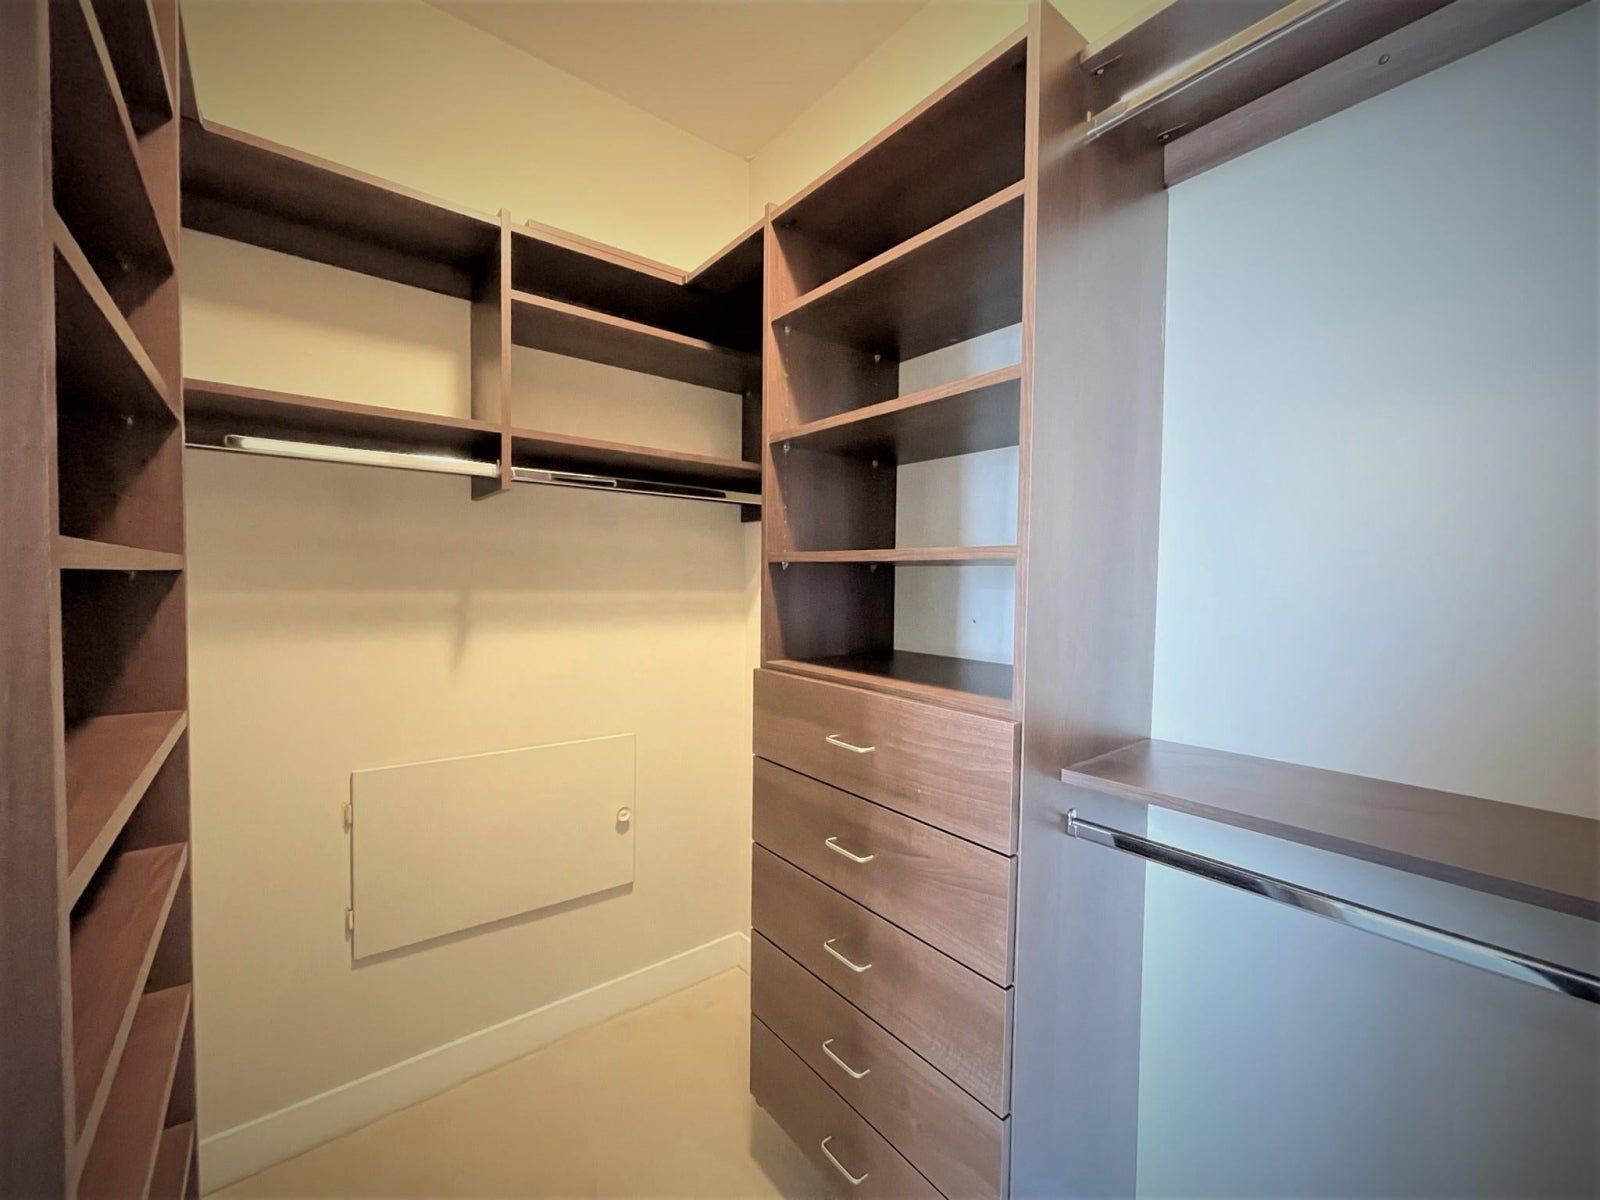 803 1333 W 11TH AVENUE - Fairview VW Apartment/Condo for sale, 2 Bedrooms (R2616288) #24